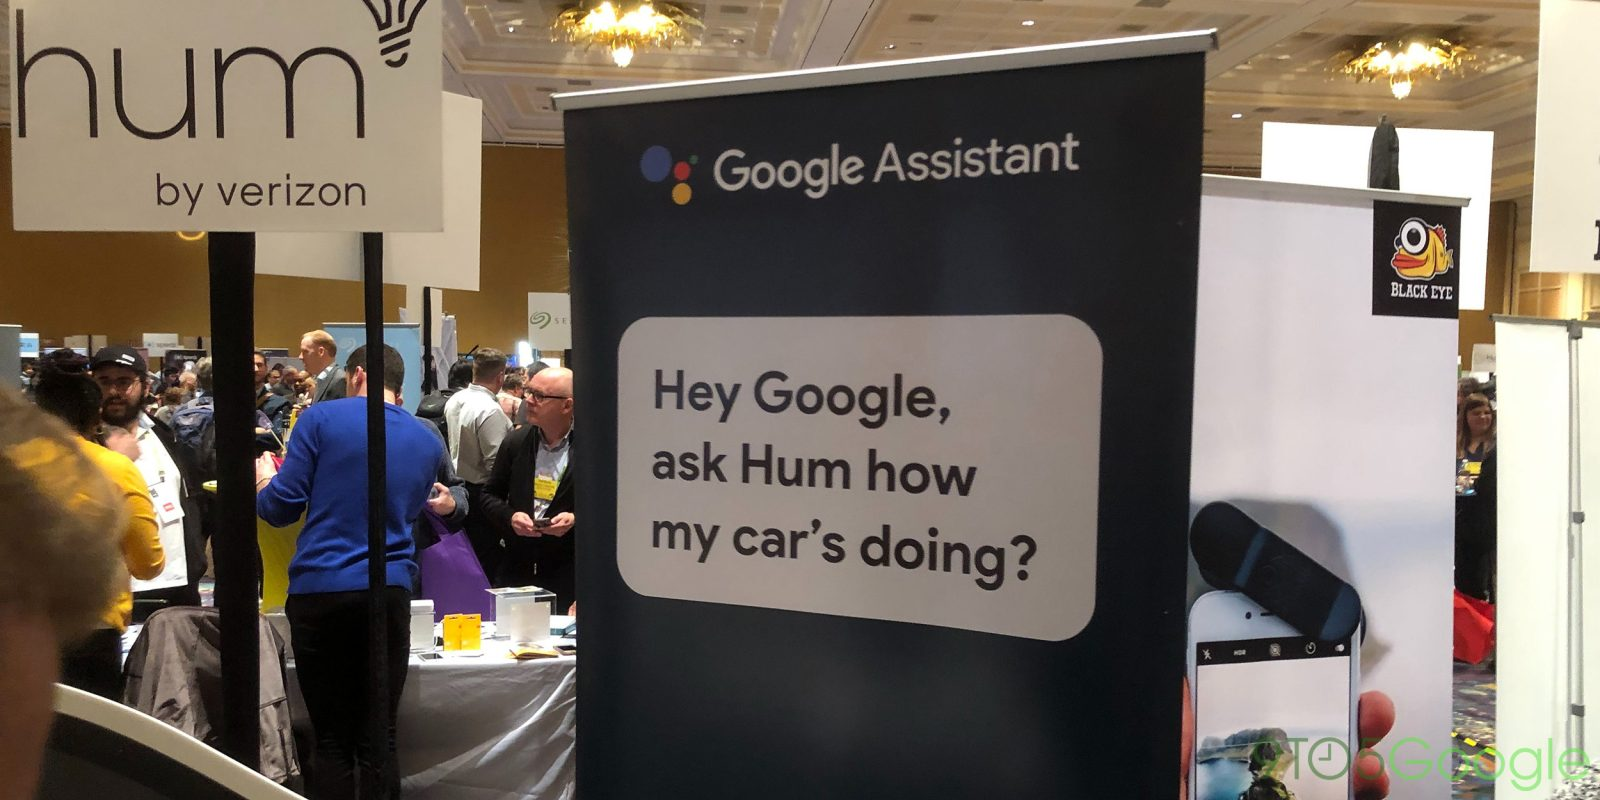 [Update: Available] Verizon's HumX brings Google Assistant to your car w/ handy voice actions